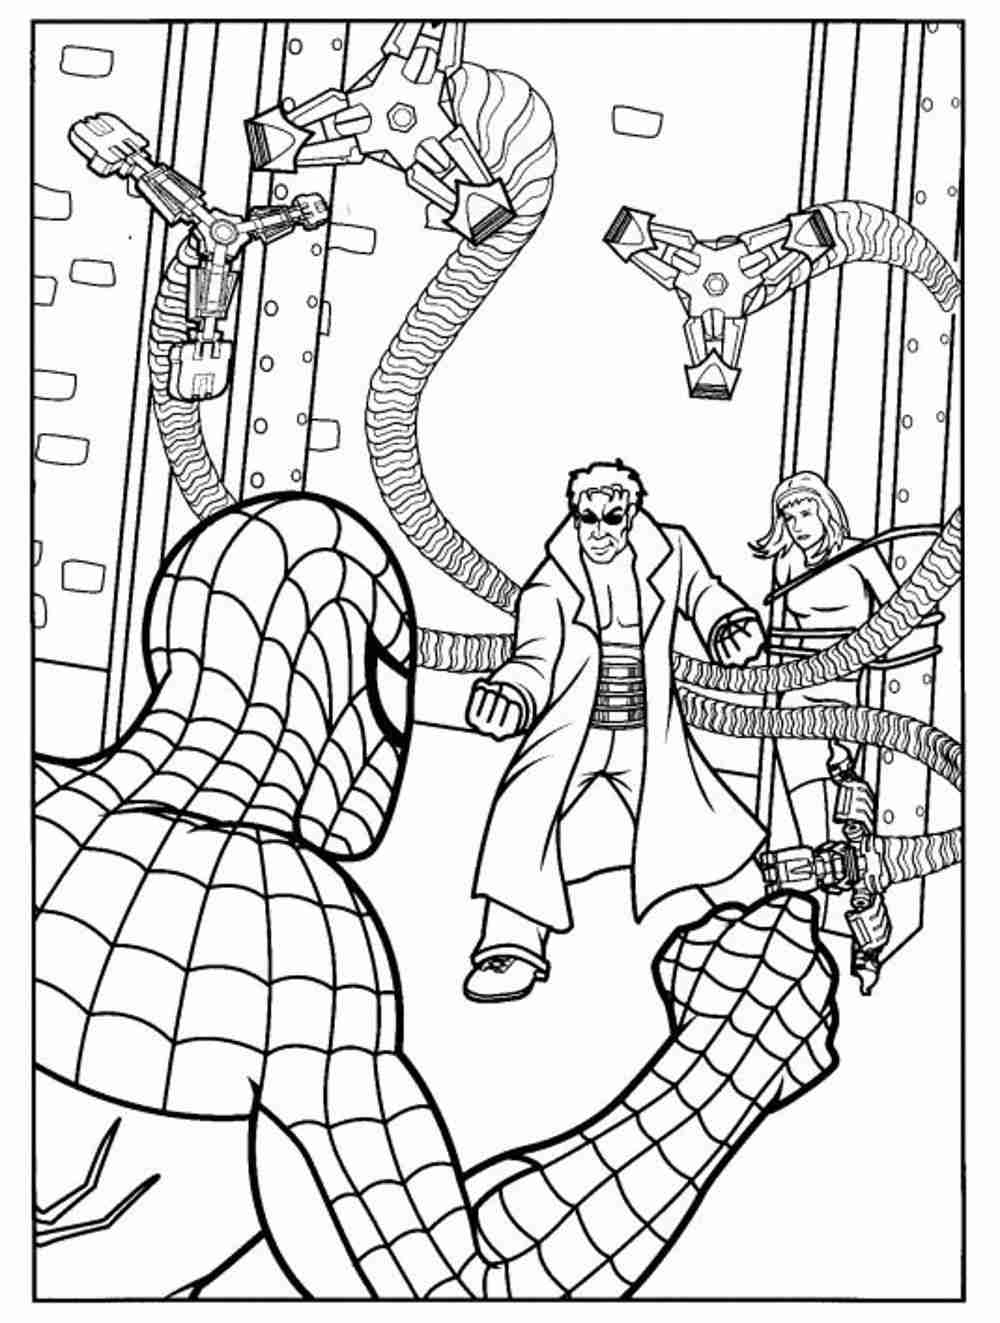 coloring spiderman updated 100 spiderman coloring pages september 2020 spiderman coloring